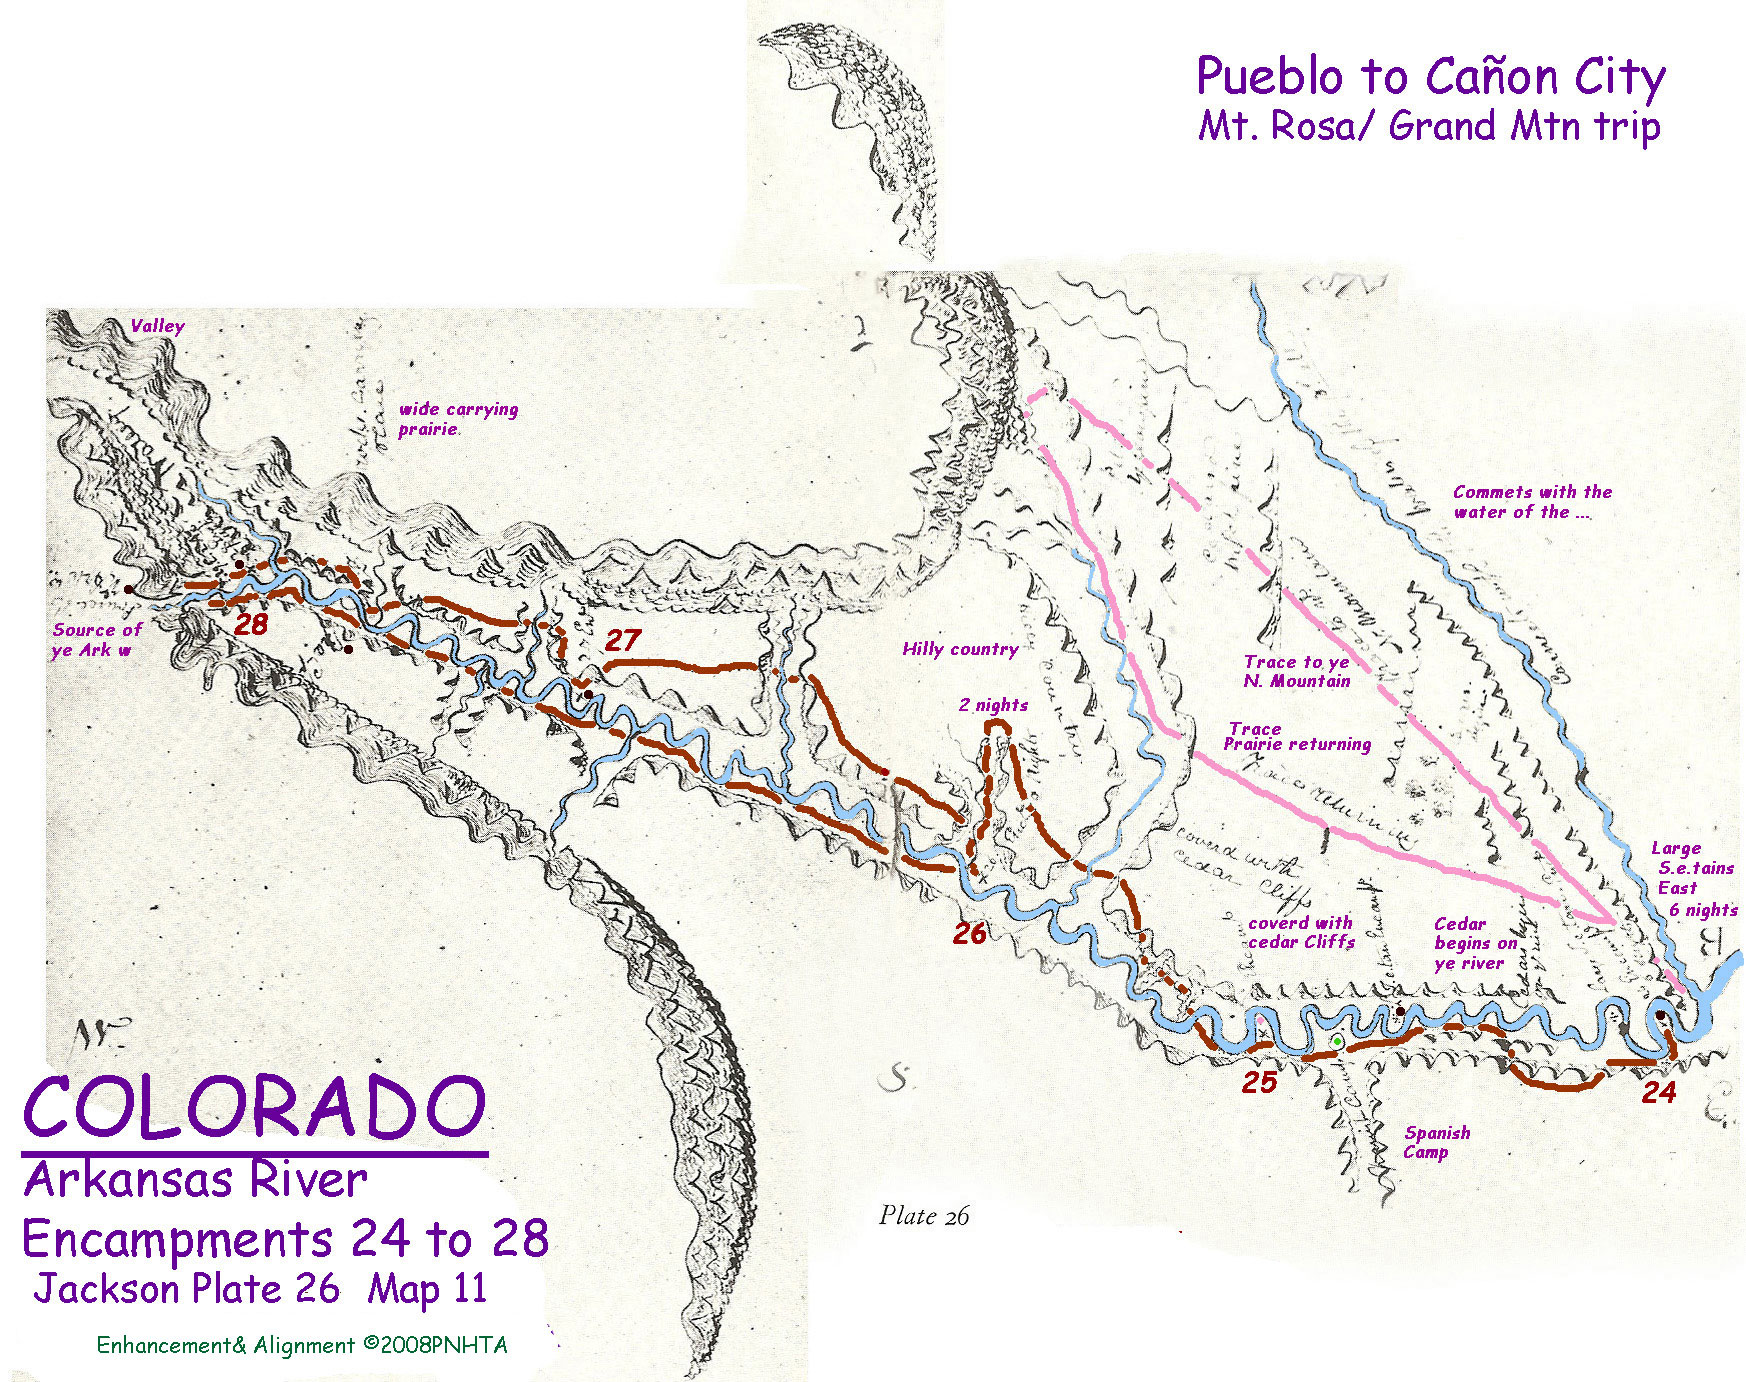 Which Peak? | Citizen Explorer: The Life of Zebulon Pike on juan rodríguez cabrillo route map, george washington route map, cabot route map, wagon train route map, juan ponce de león route map, coronado route map, juan bautista de anza route map, ferdinand magellan's route map, daniel boone route map, meriwether lewis map, sacagawea route map, benjamin bonneville route map, pike expedition map, paul revere route map, christopher columbus route map, jedediah smith route map, louis jolliet route map, james cook route map, juan de onate route map, jean nicolet route map,